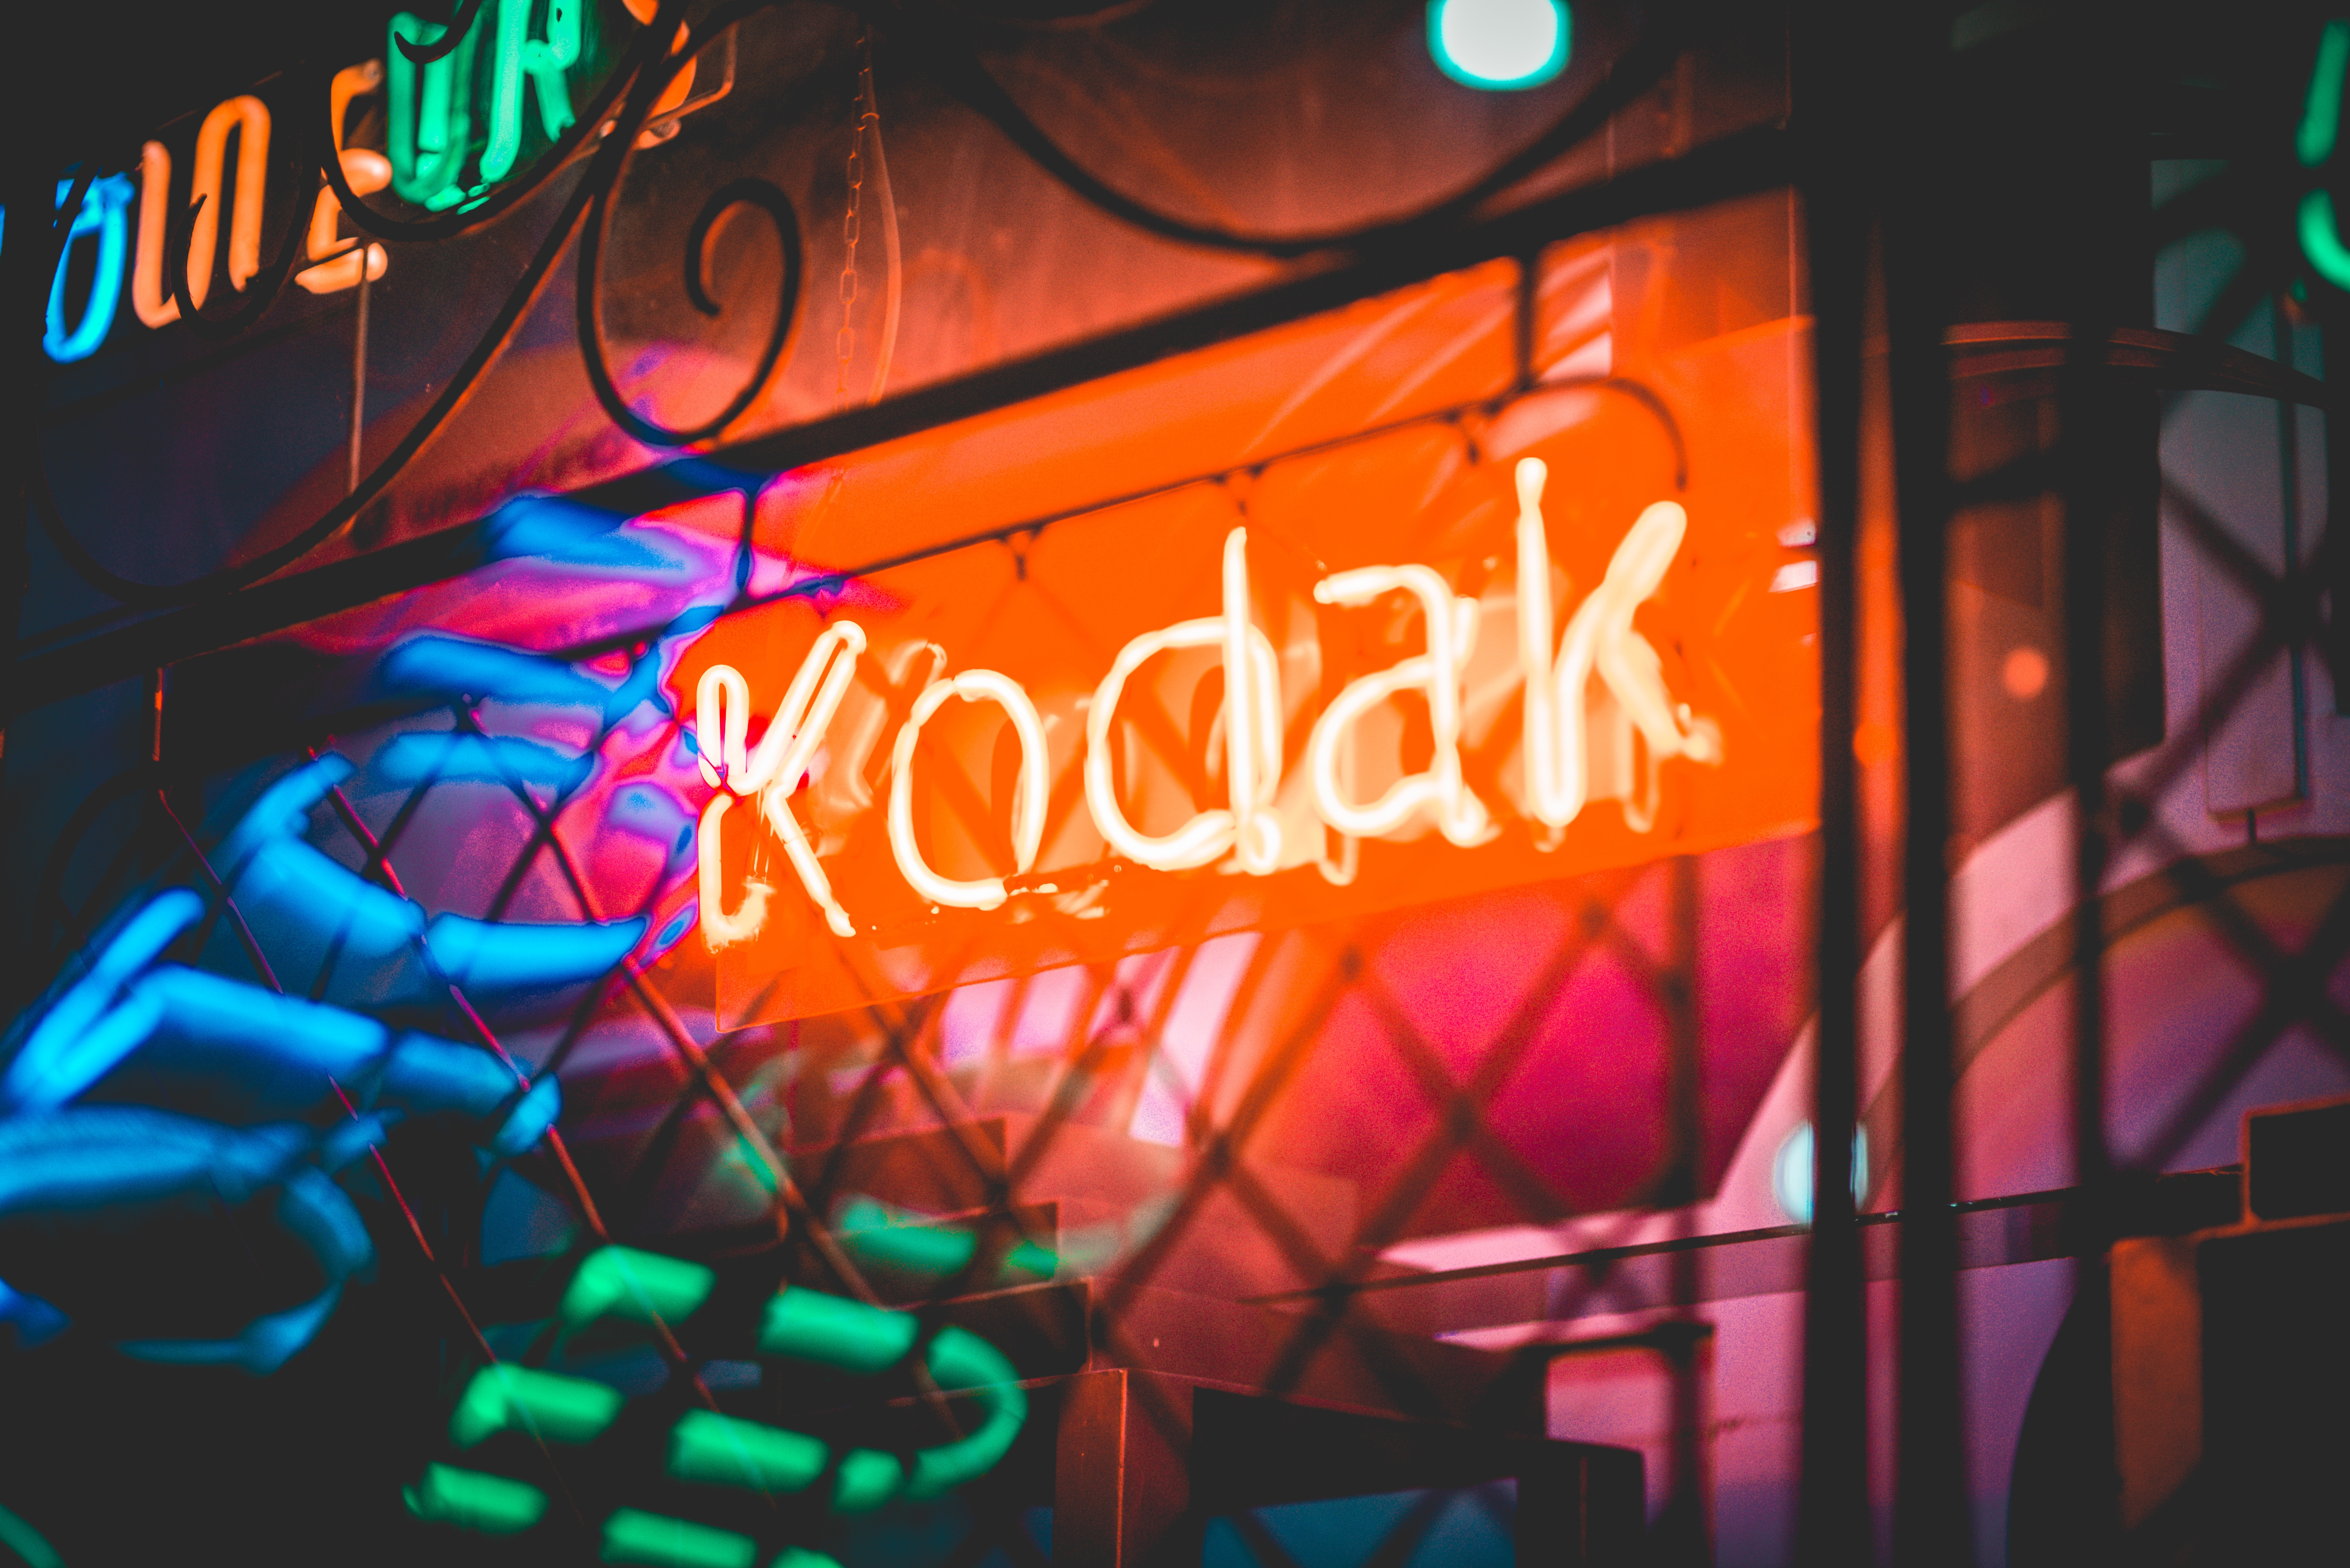 Kodak LED sign